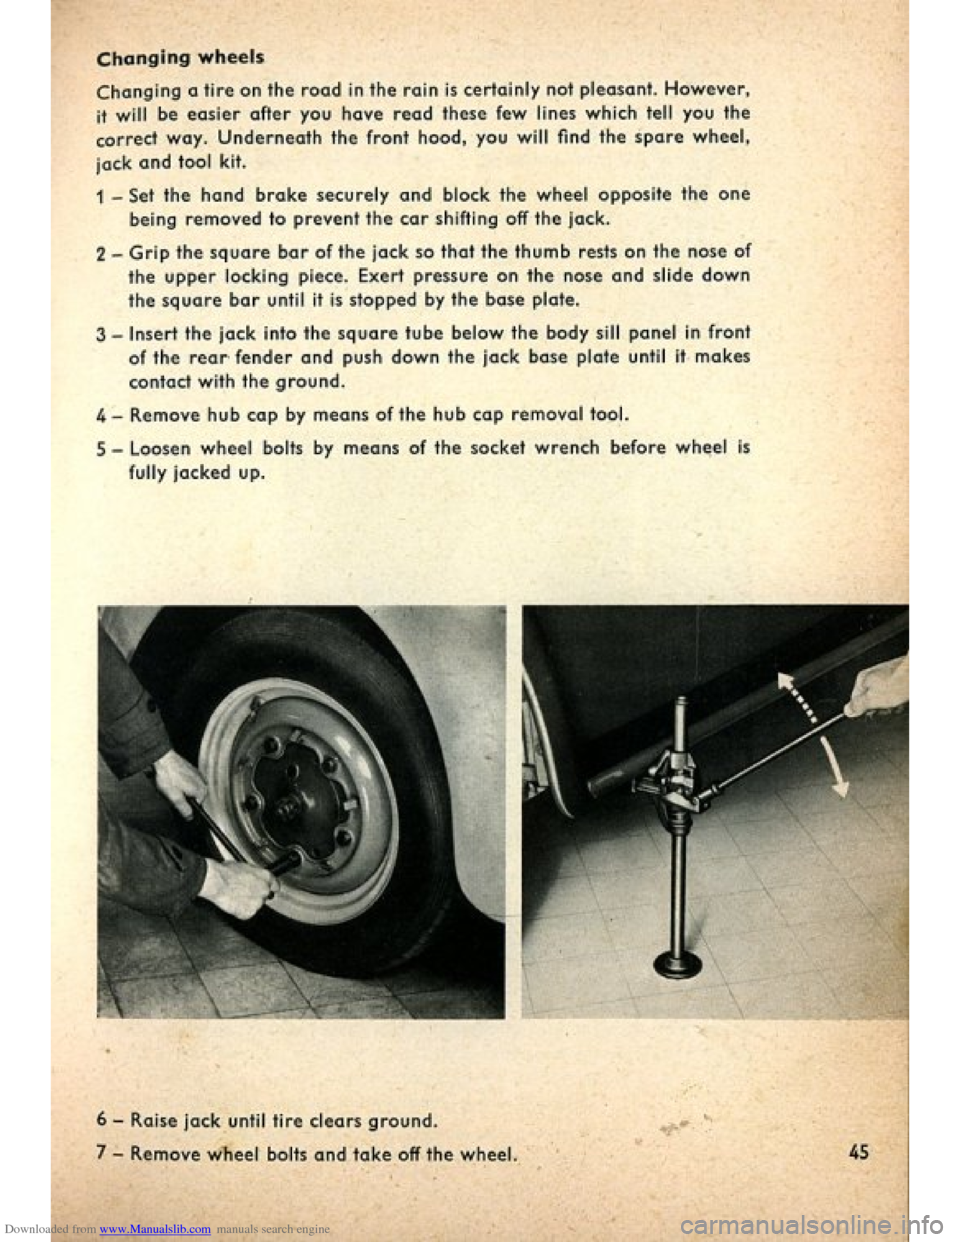 VOLKSWAGEN BEETLE 1960 1.G Owners Manual, Page 47